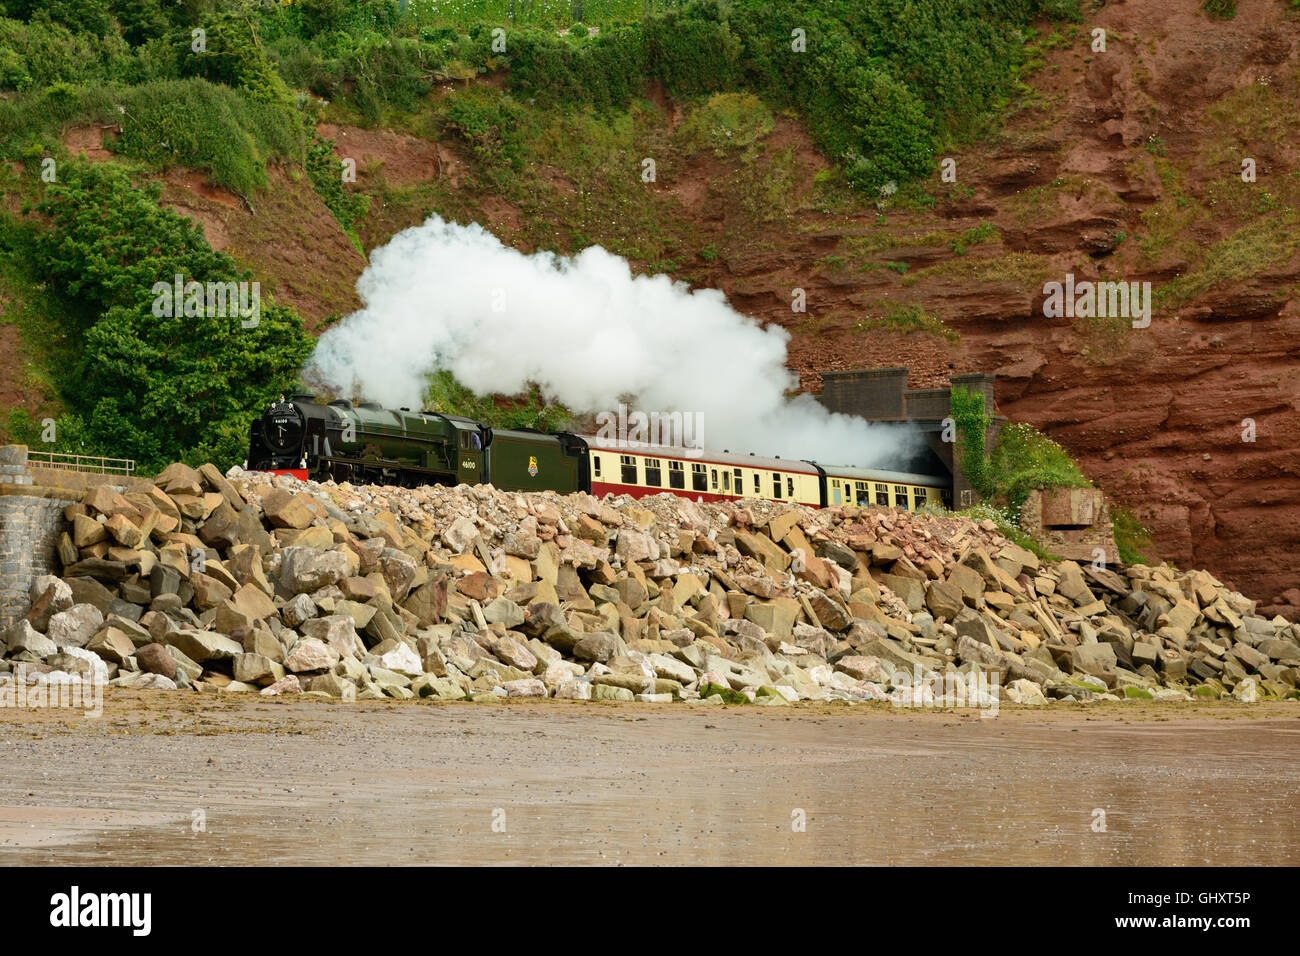 The Torbay Express emerging from Parsons tunnel, hauled by ex-LMS locomotive No 46100 Royal Scot. - Stock Image